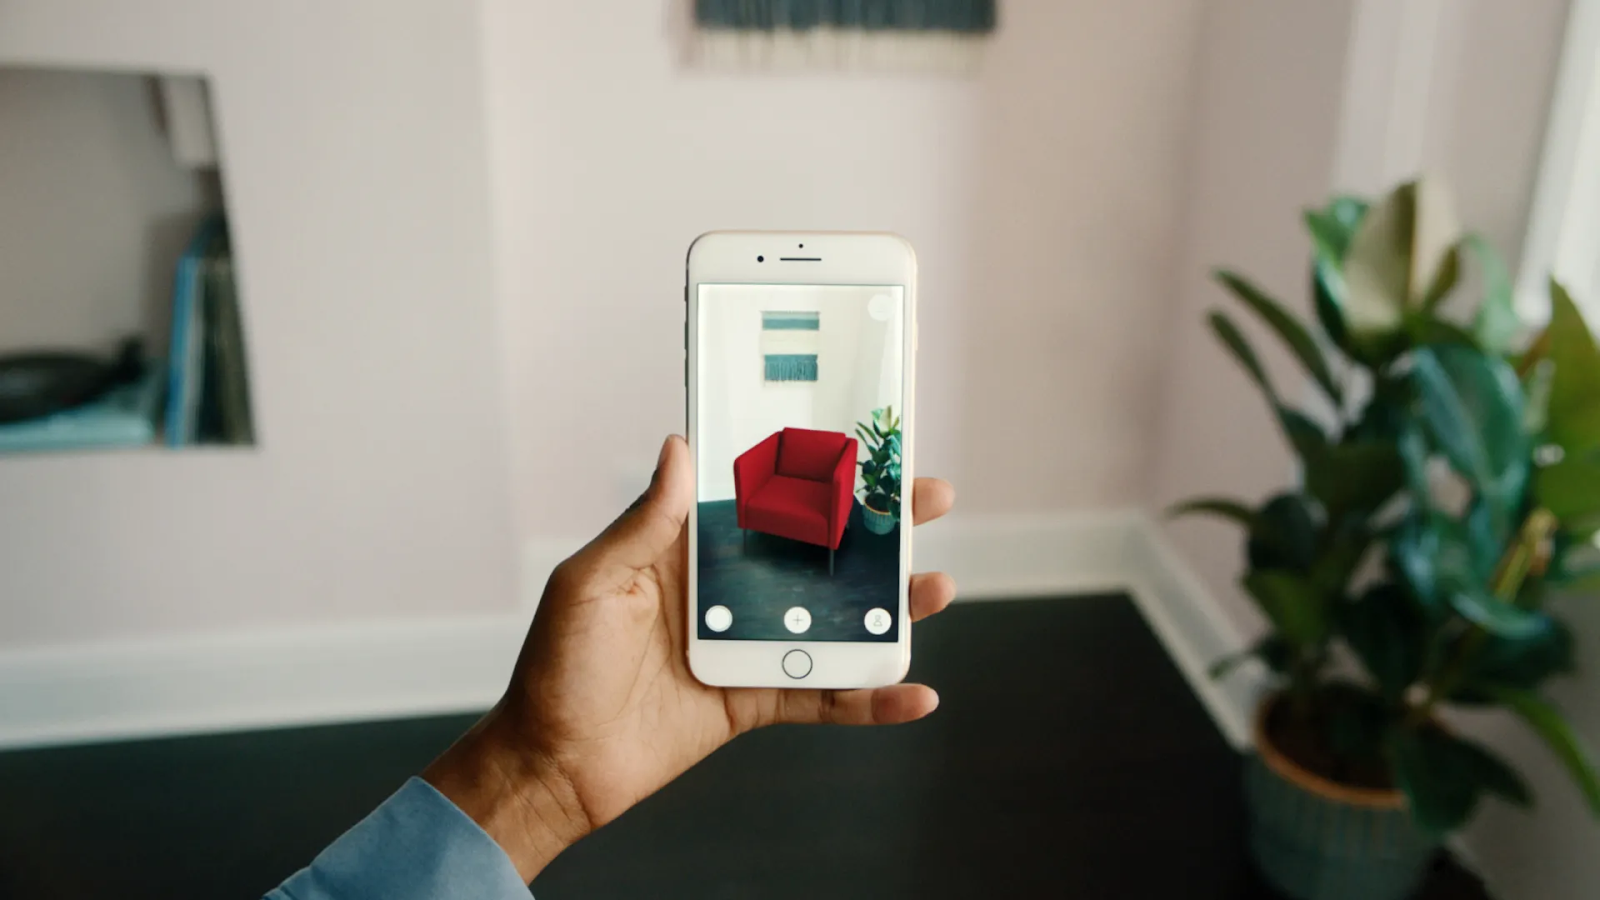 visualising an armchair with AR in the room